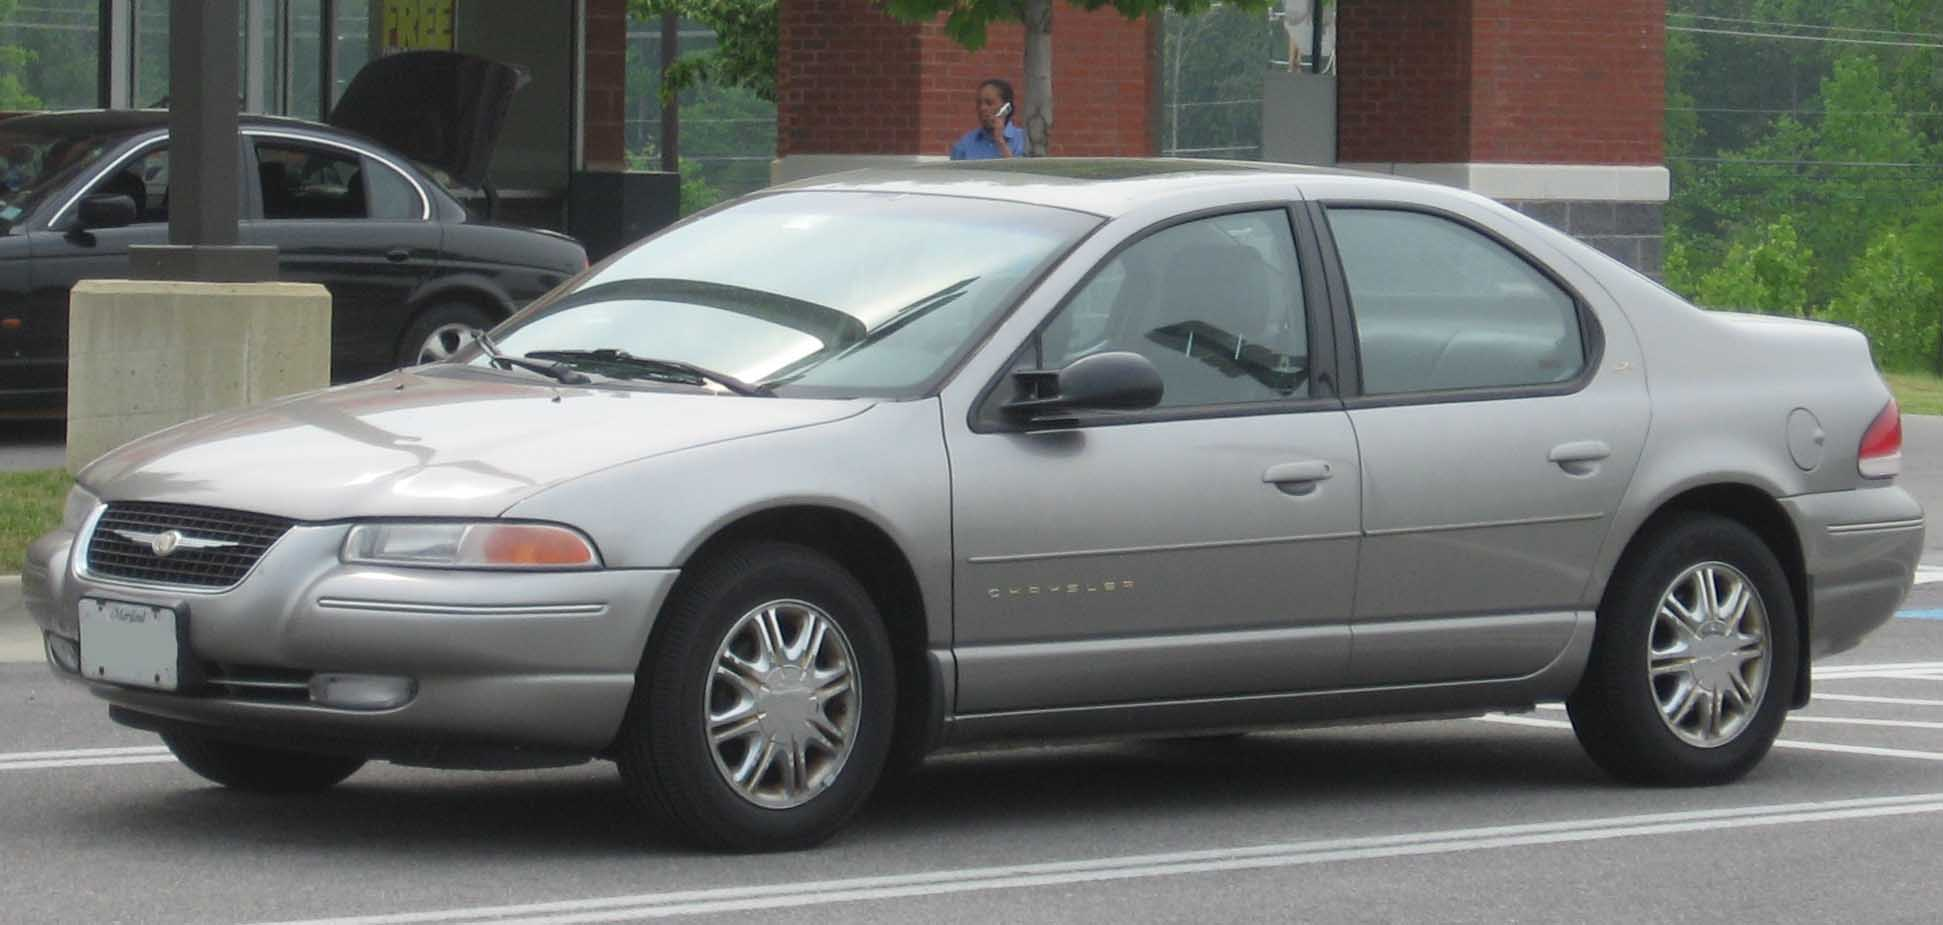 1998 Chrysler Cirrus #6